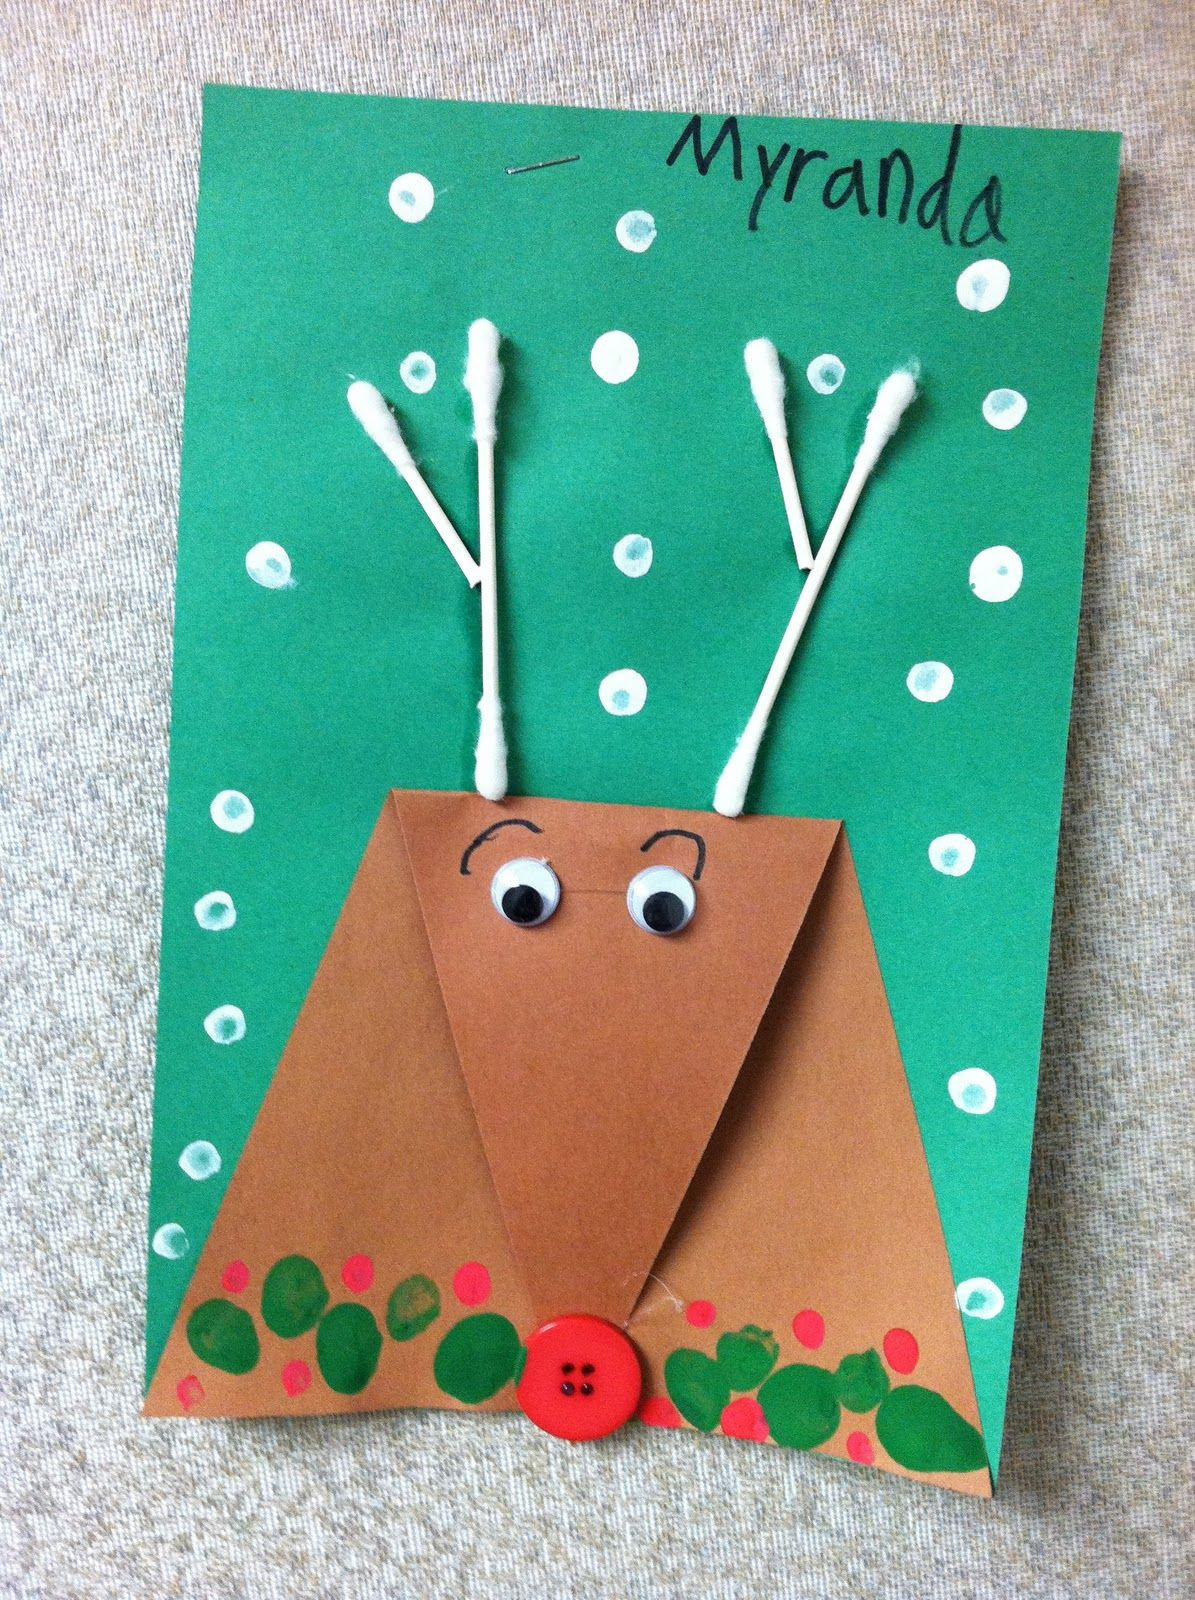 Artz kiddoz triangle collage dreiecke review at holiday time perfect christmas reindeer craft for kindergarten perfect craft artz kiddoz triangle collage reindeer card or picture great activity to do with little kristyandbryce Choice Image